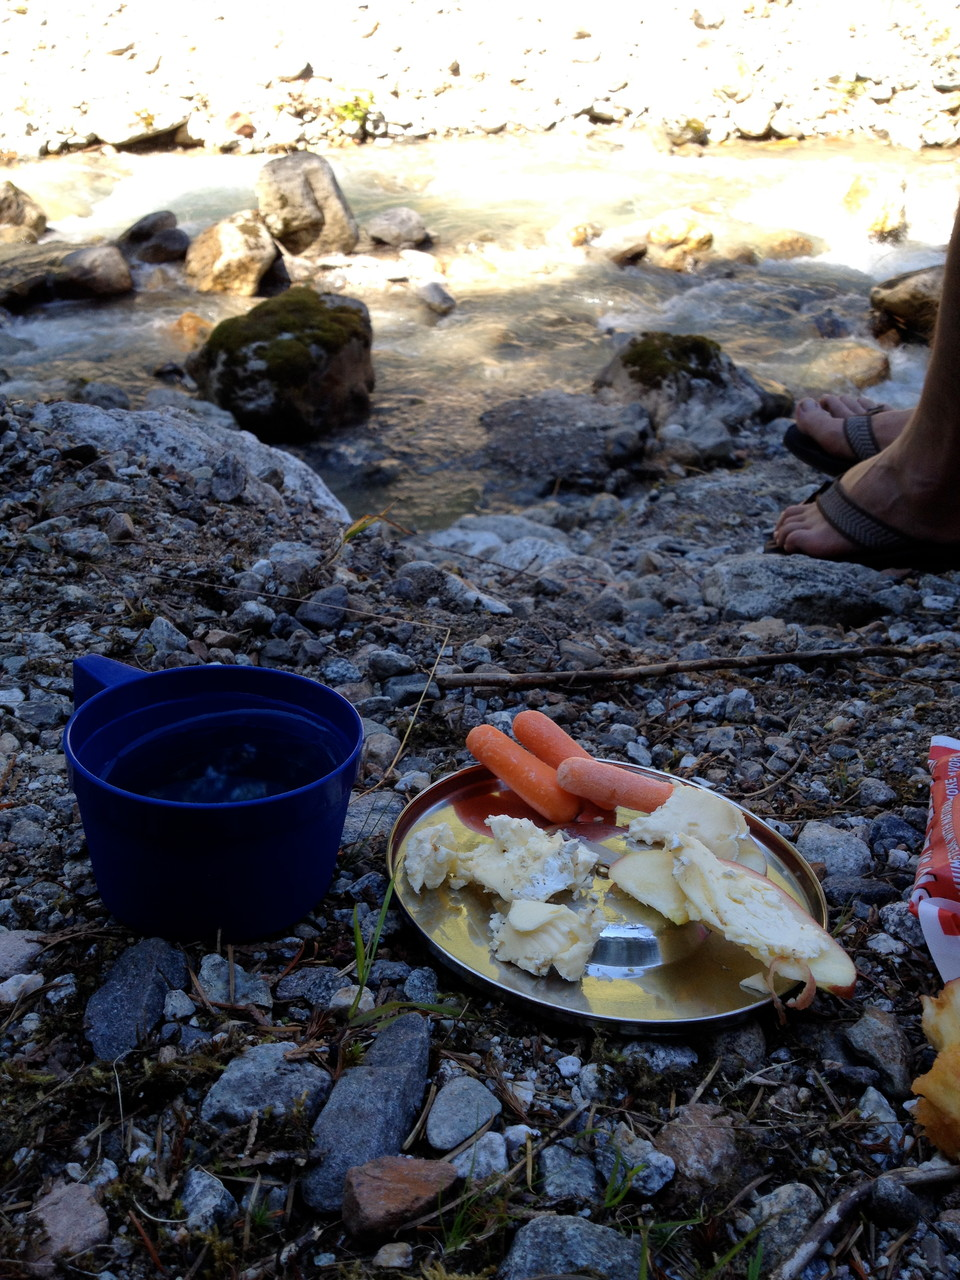 Treated to a delicious snack curtosy of friendly camping neighbors